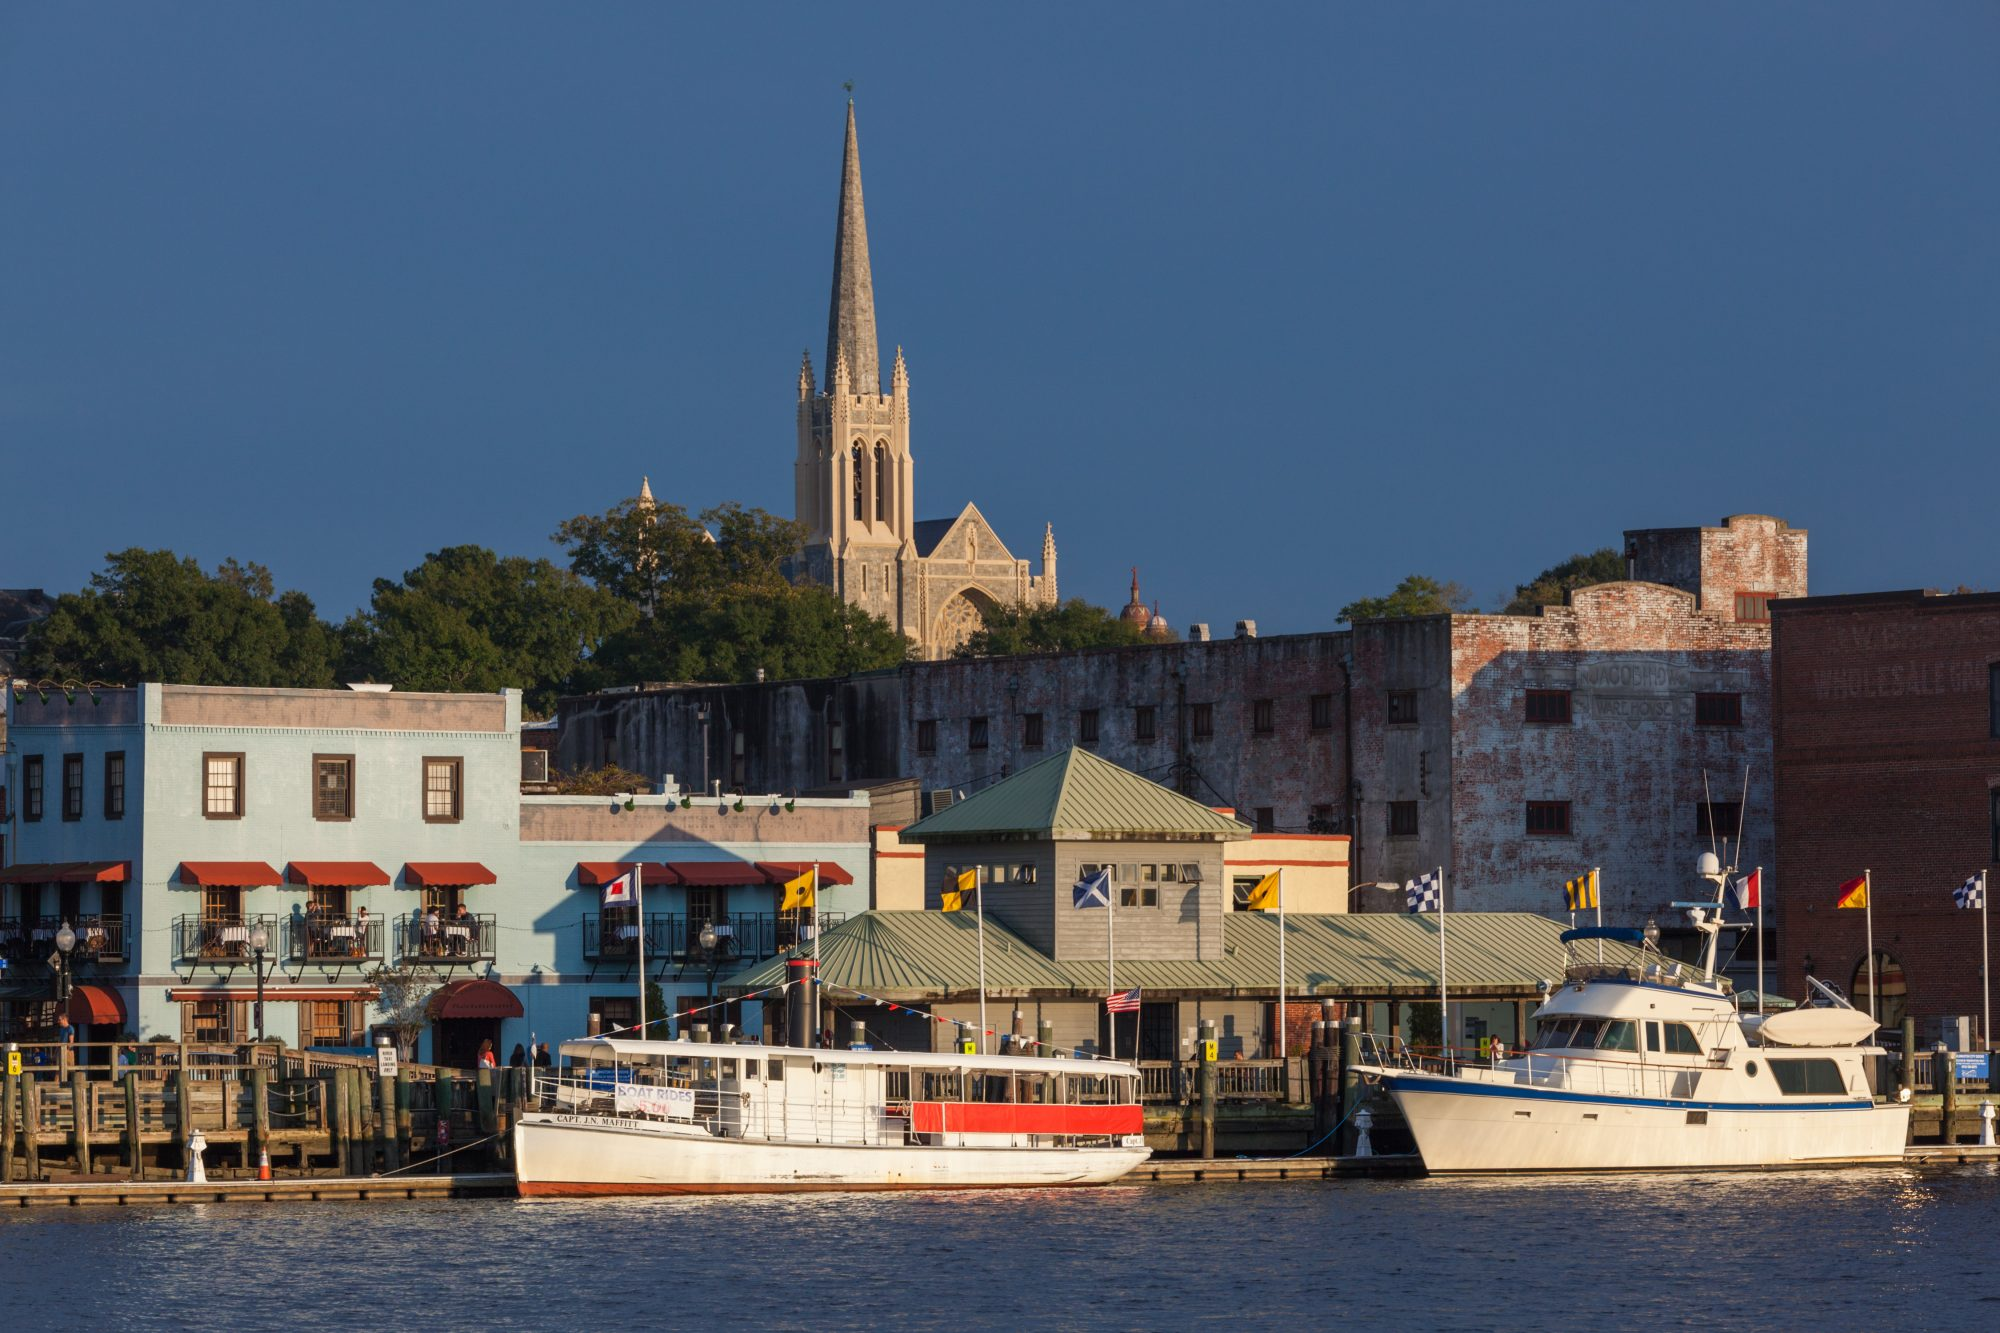 13. Wilmington, North Carolina